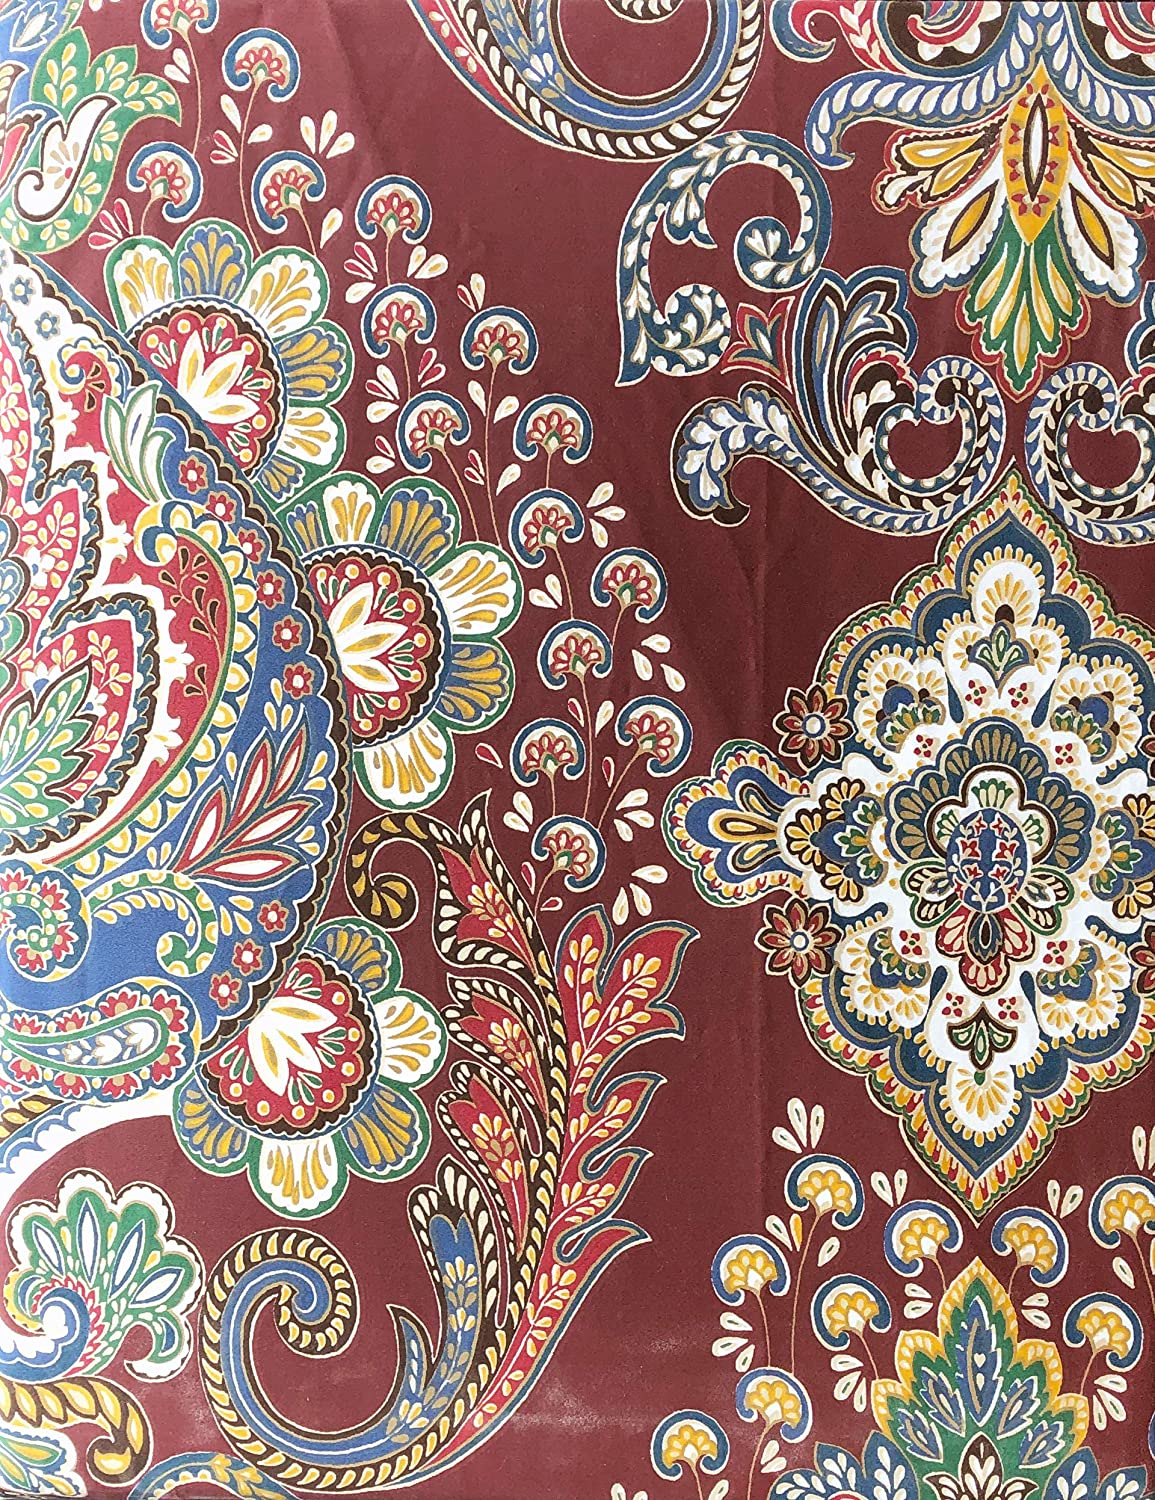 Tahari Home Bedding 3 Piece King Size Luxury Duvet Comforter Cover Pillowcases Shams Set Paisley Medallions Pattern in Shades of Red Blue Green Taupe White